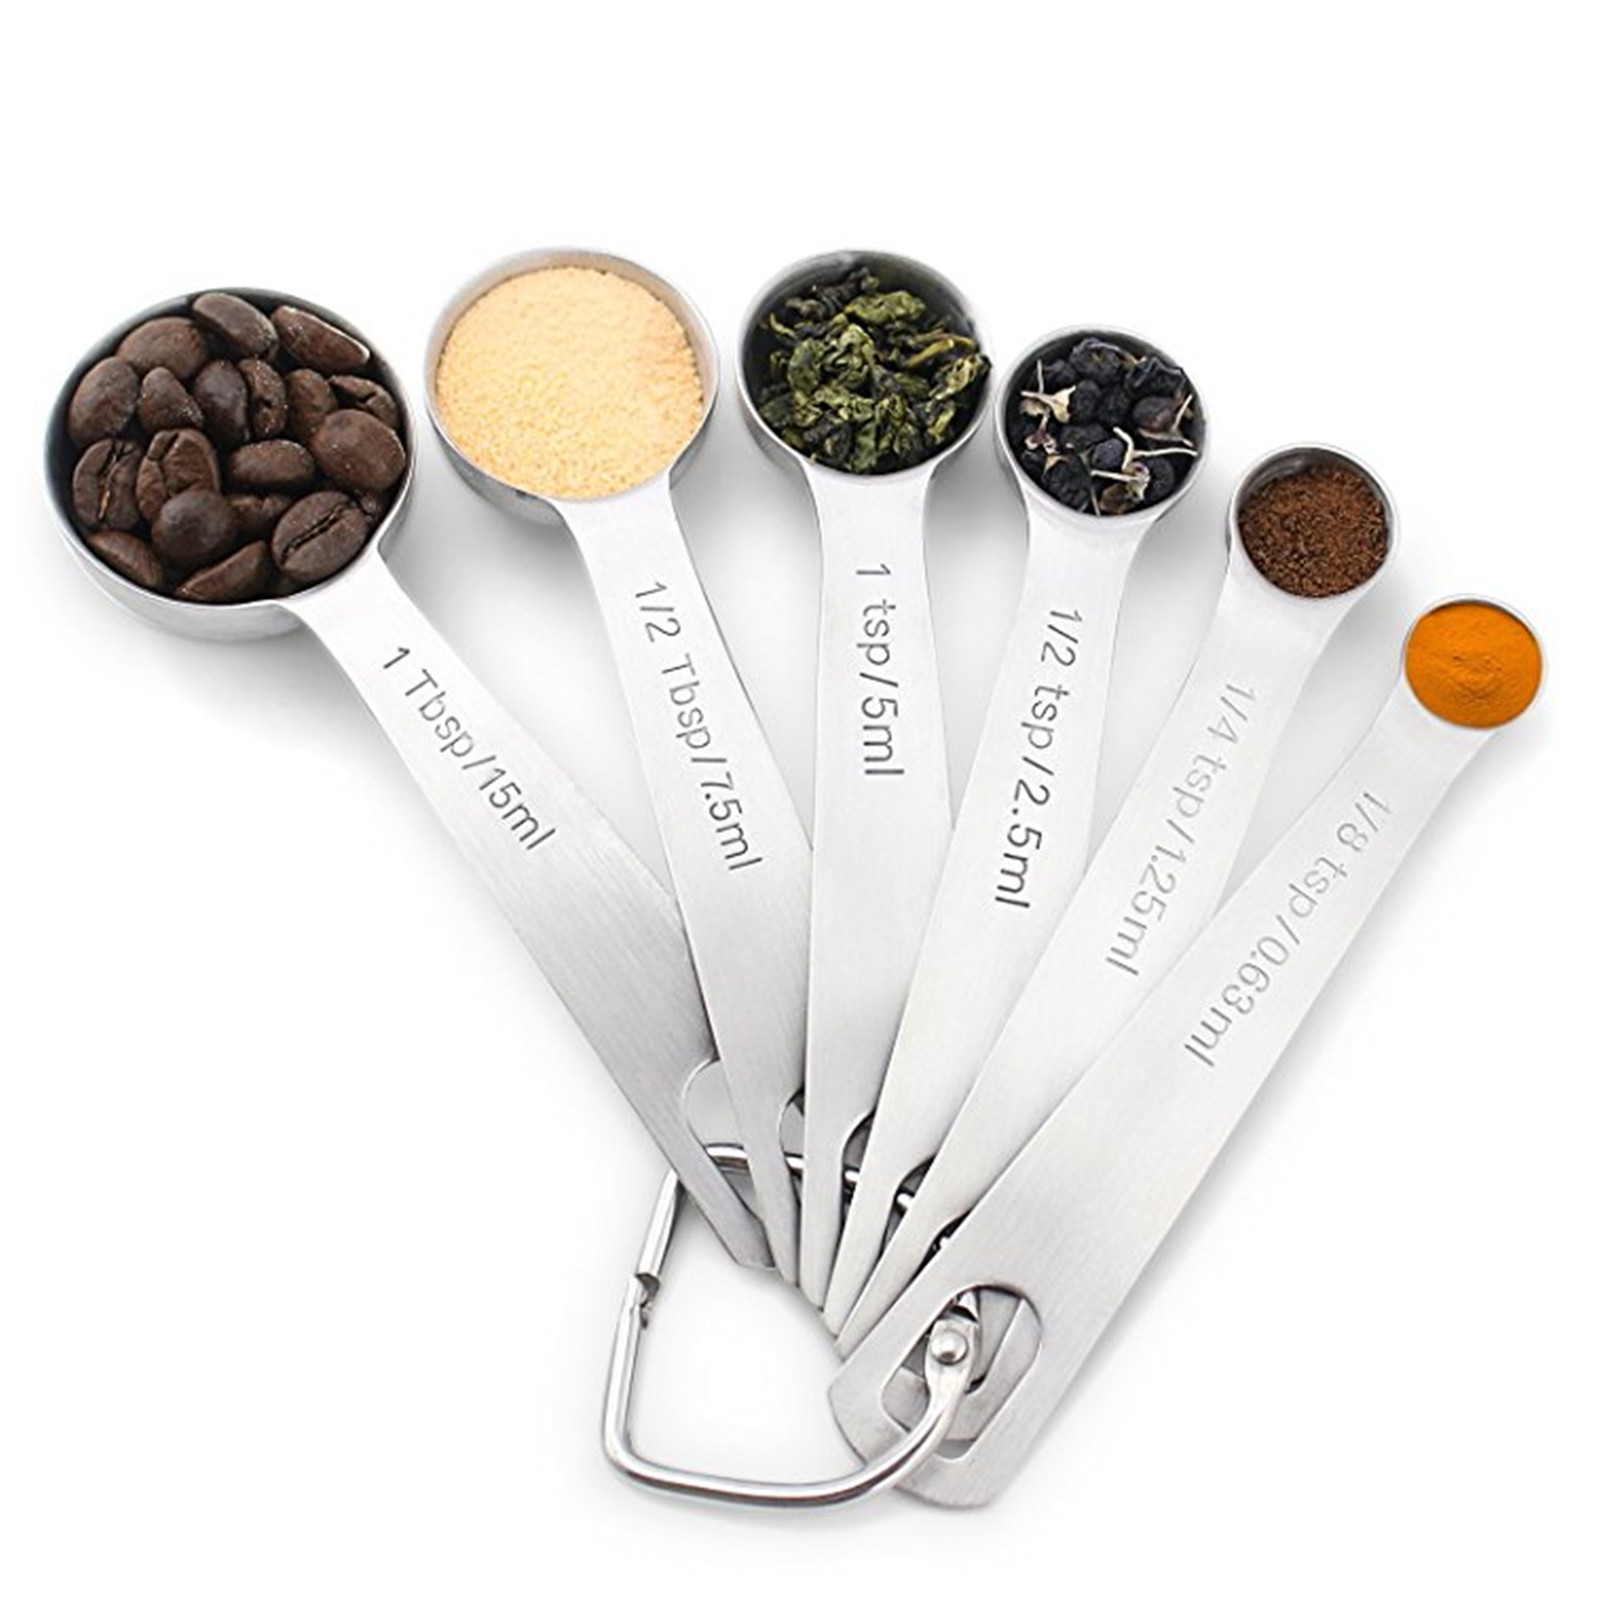 18 8 Stainless Steel Measuring Spoons, Set of 6 for Measuring Dry and Liquid Ingredients by Generic